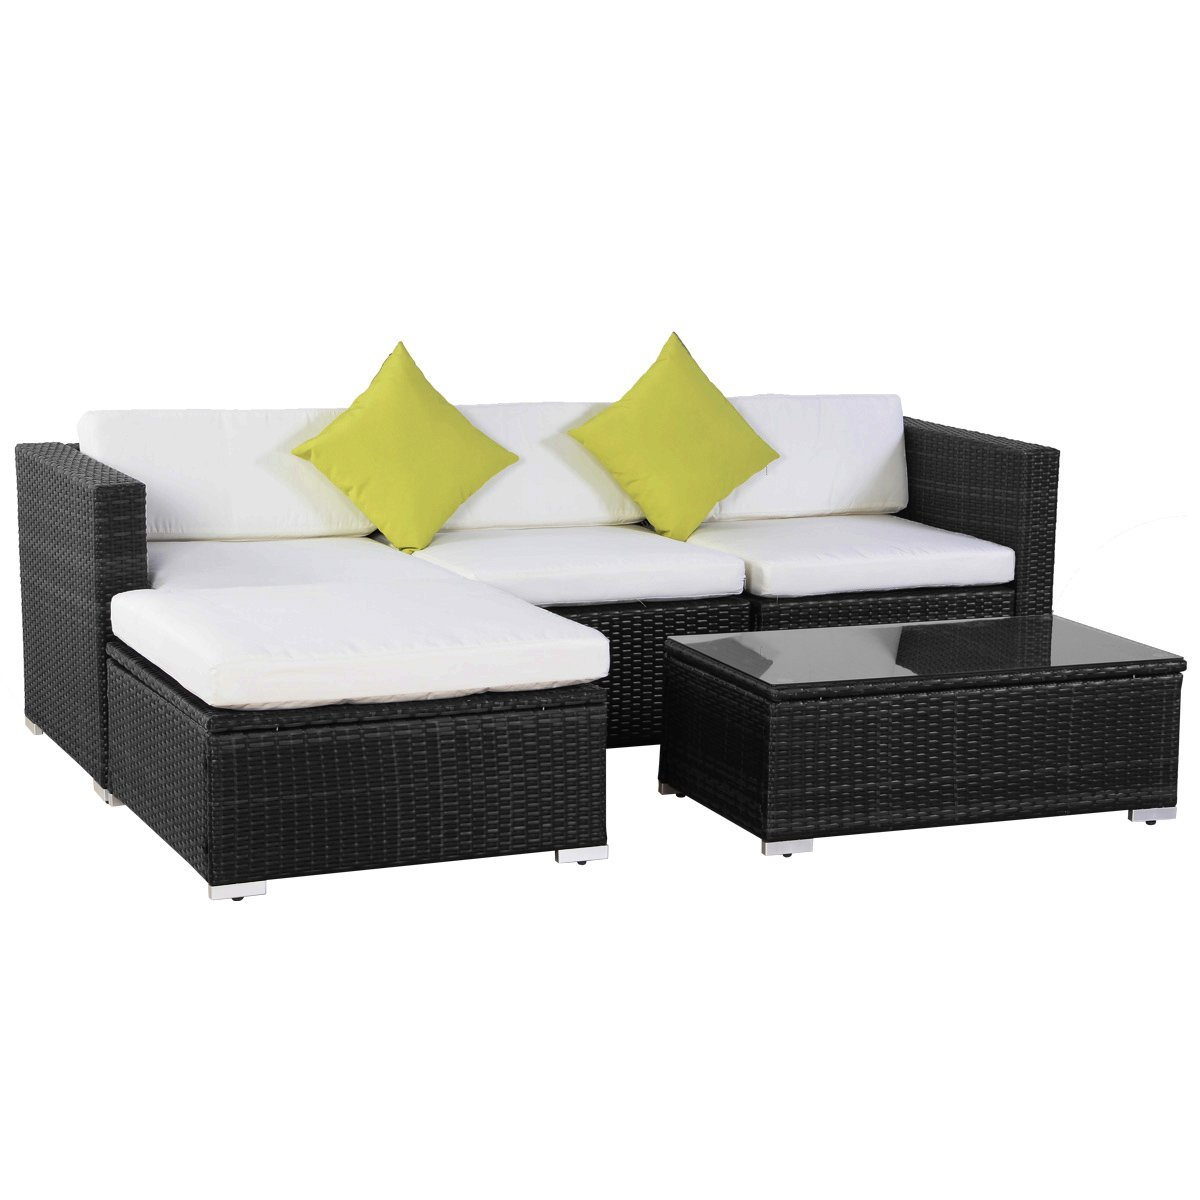 fds 5 teiliges outdoor garten rattan gartenm bel ecksofa. Black Bedroom Furniture Sets. Home Design Ideas